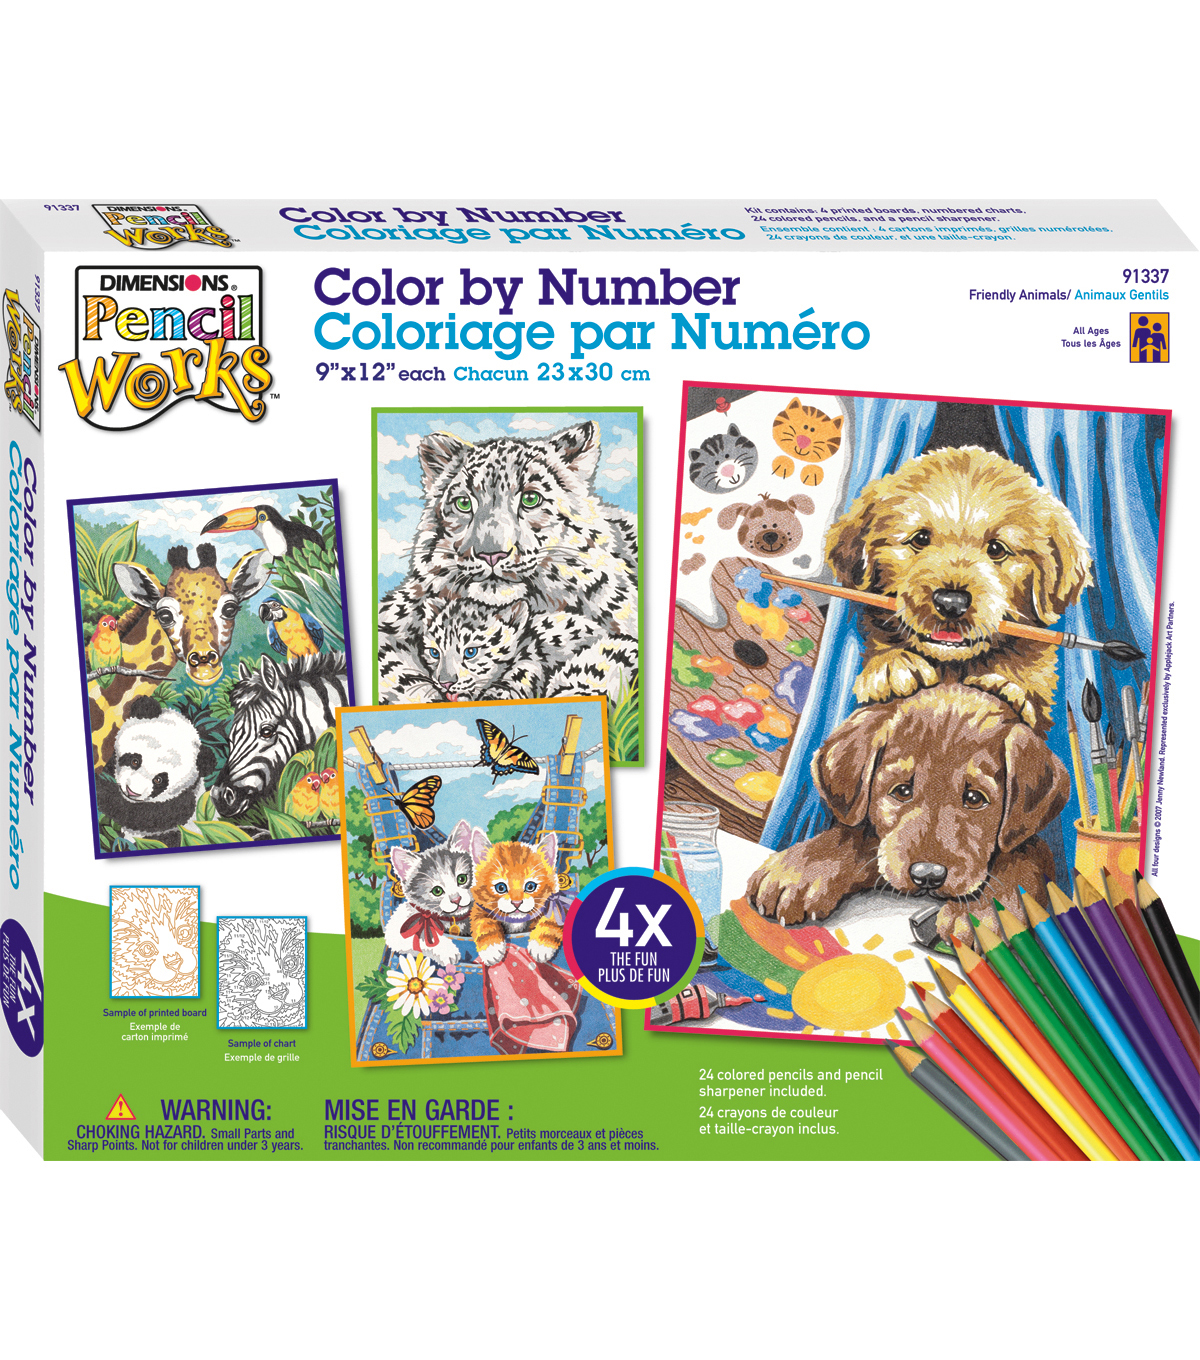 Dimensions Pencil Works Color By Number Kit-Friendly Animals